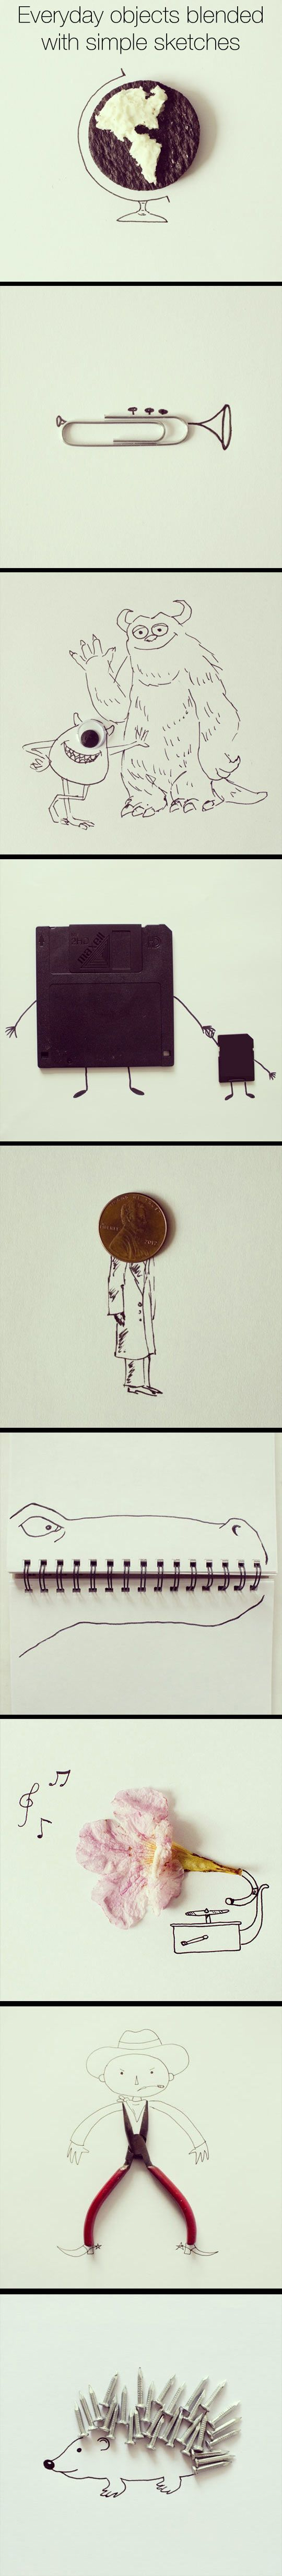 Art Created From Ordinary Things